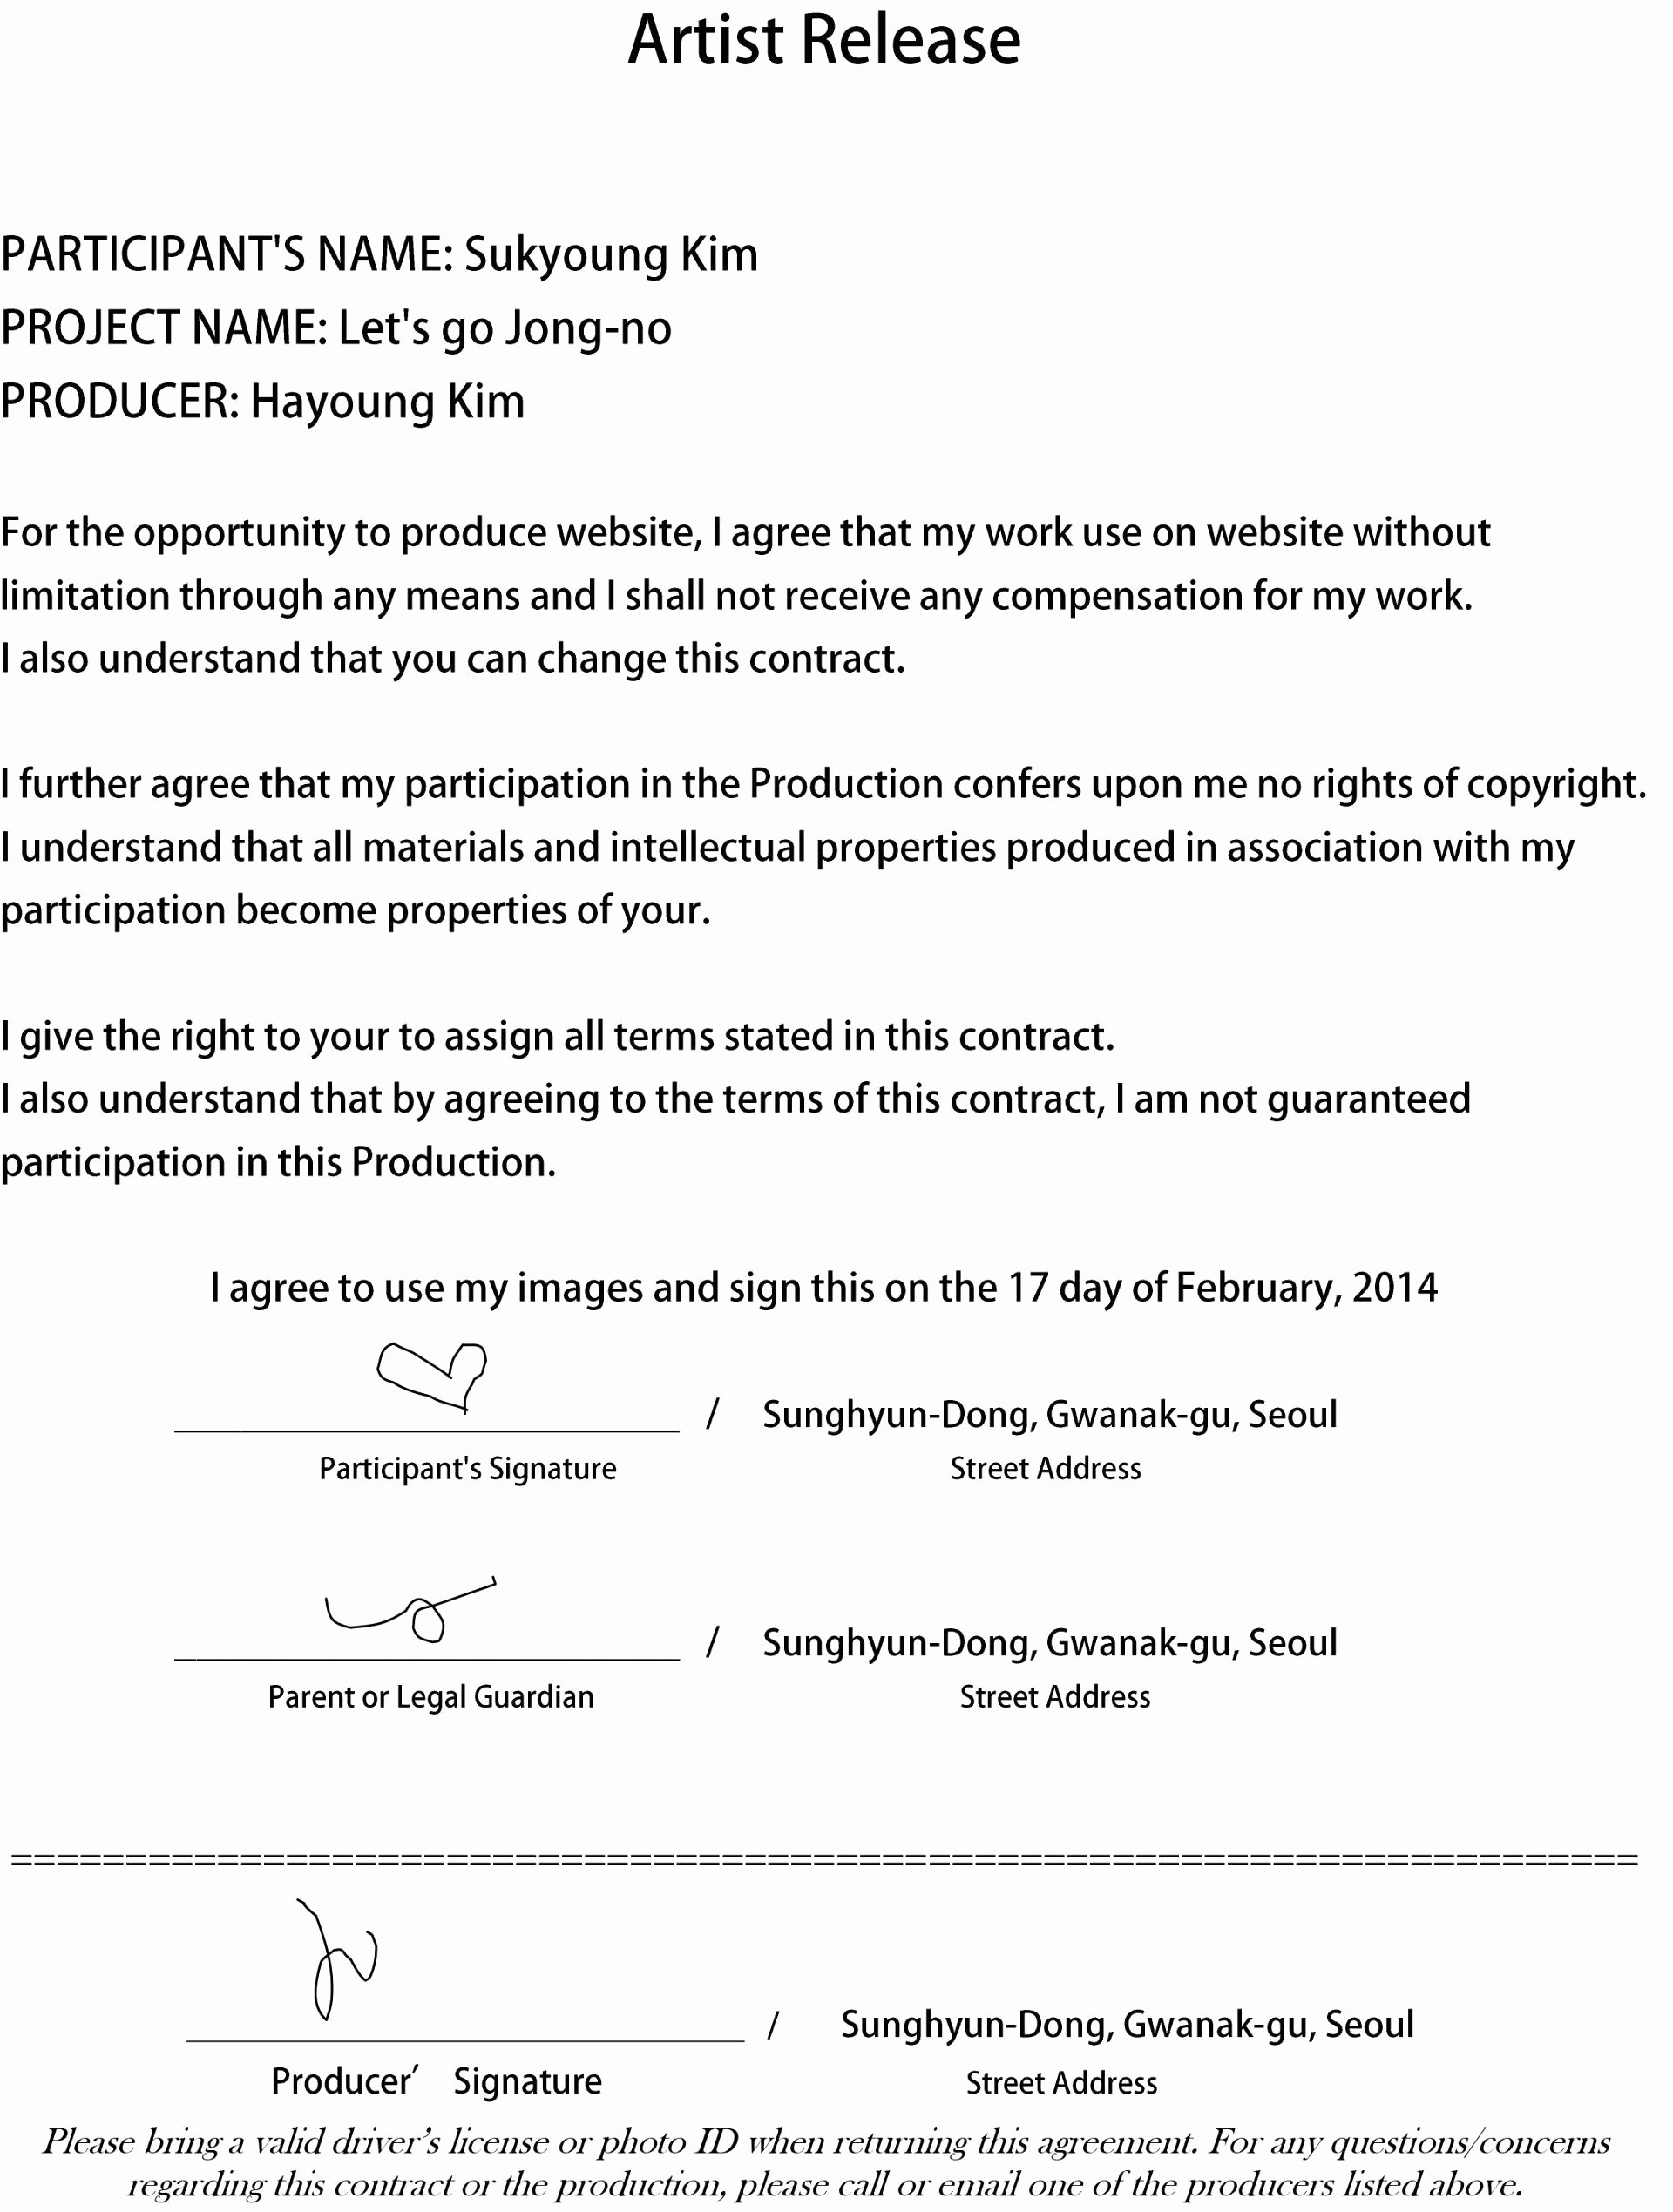 Artist Management Contract Template Beautiful Template Artist Manager Contract Template